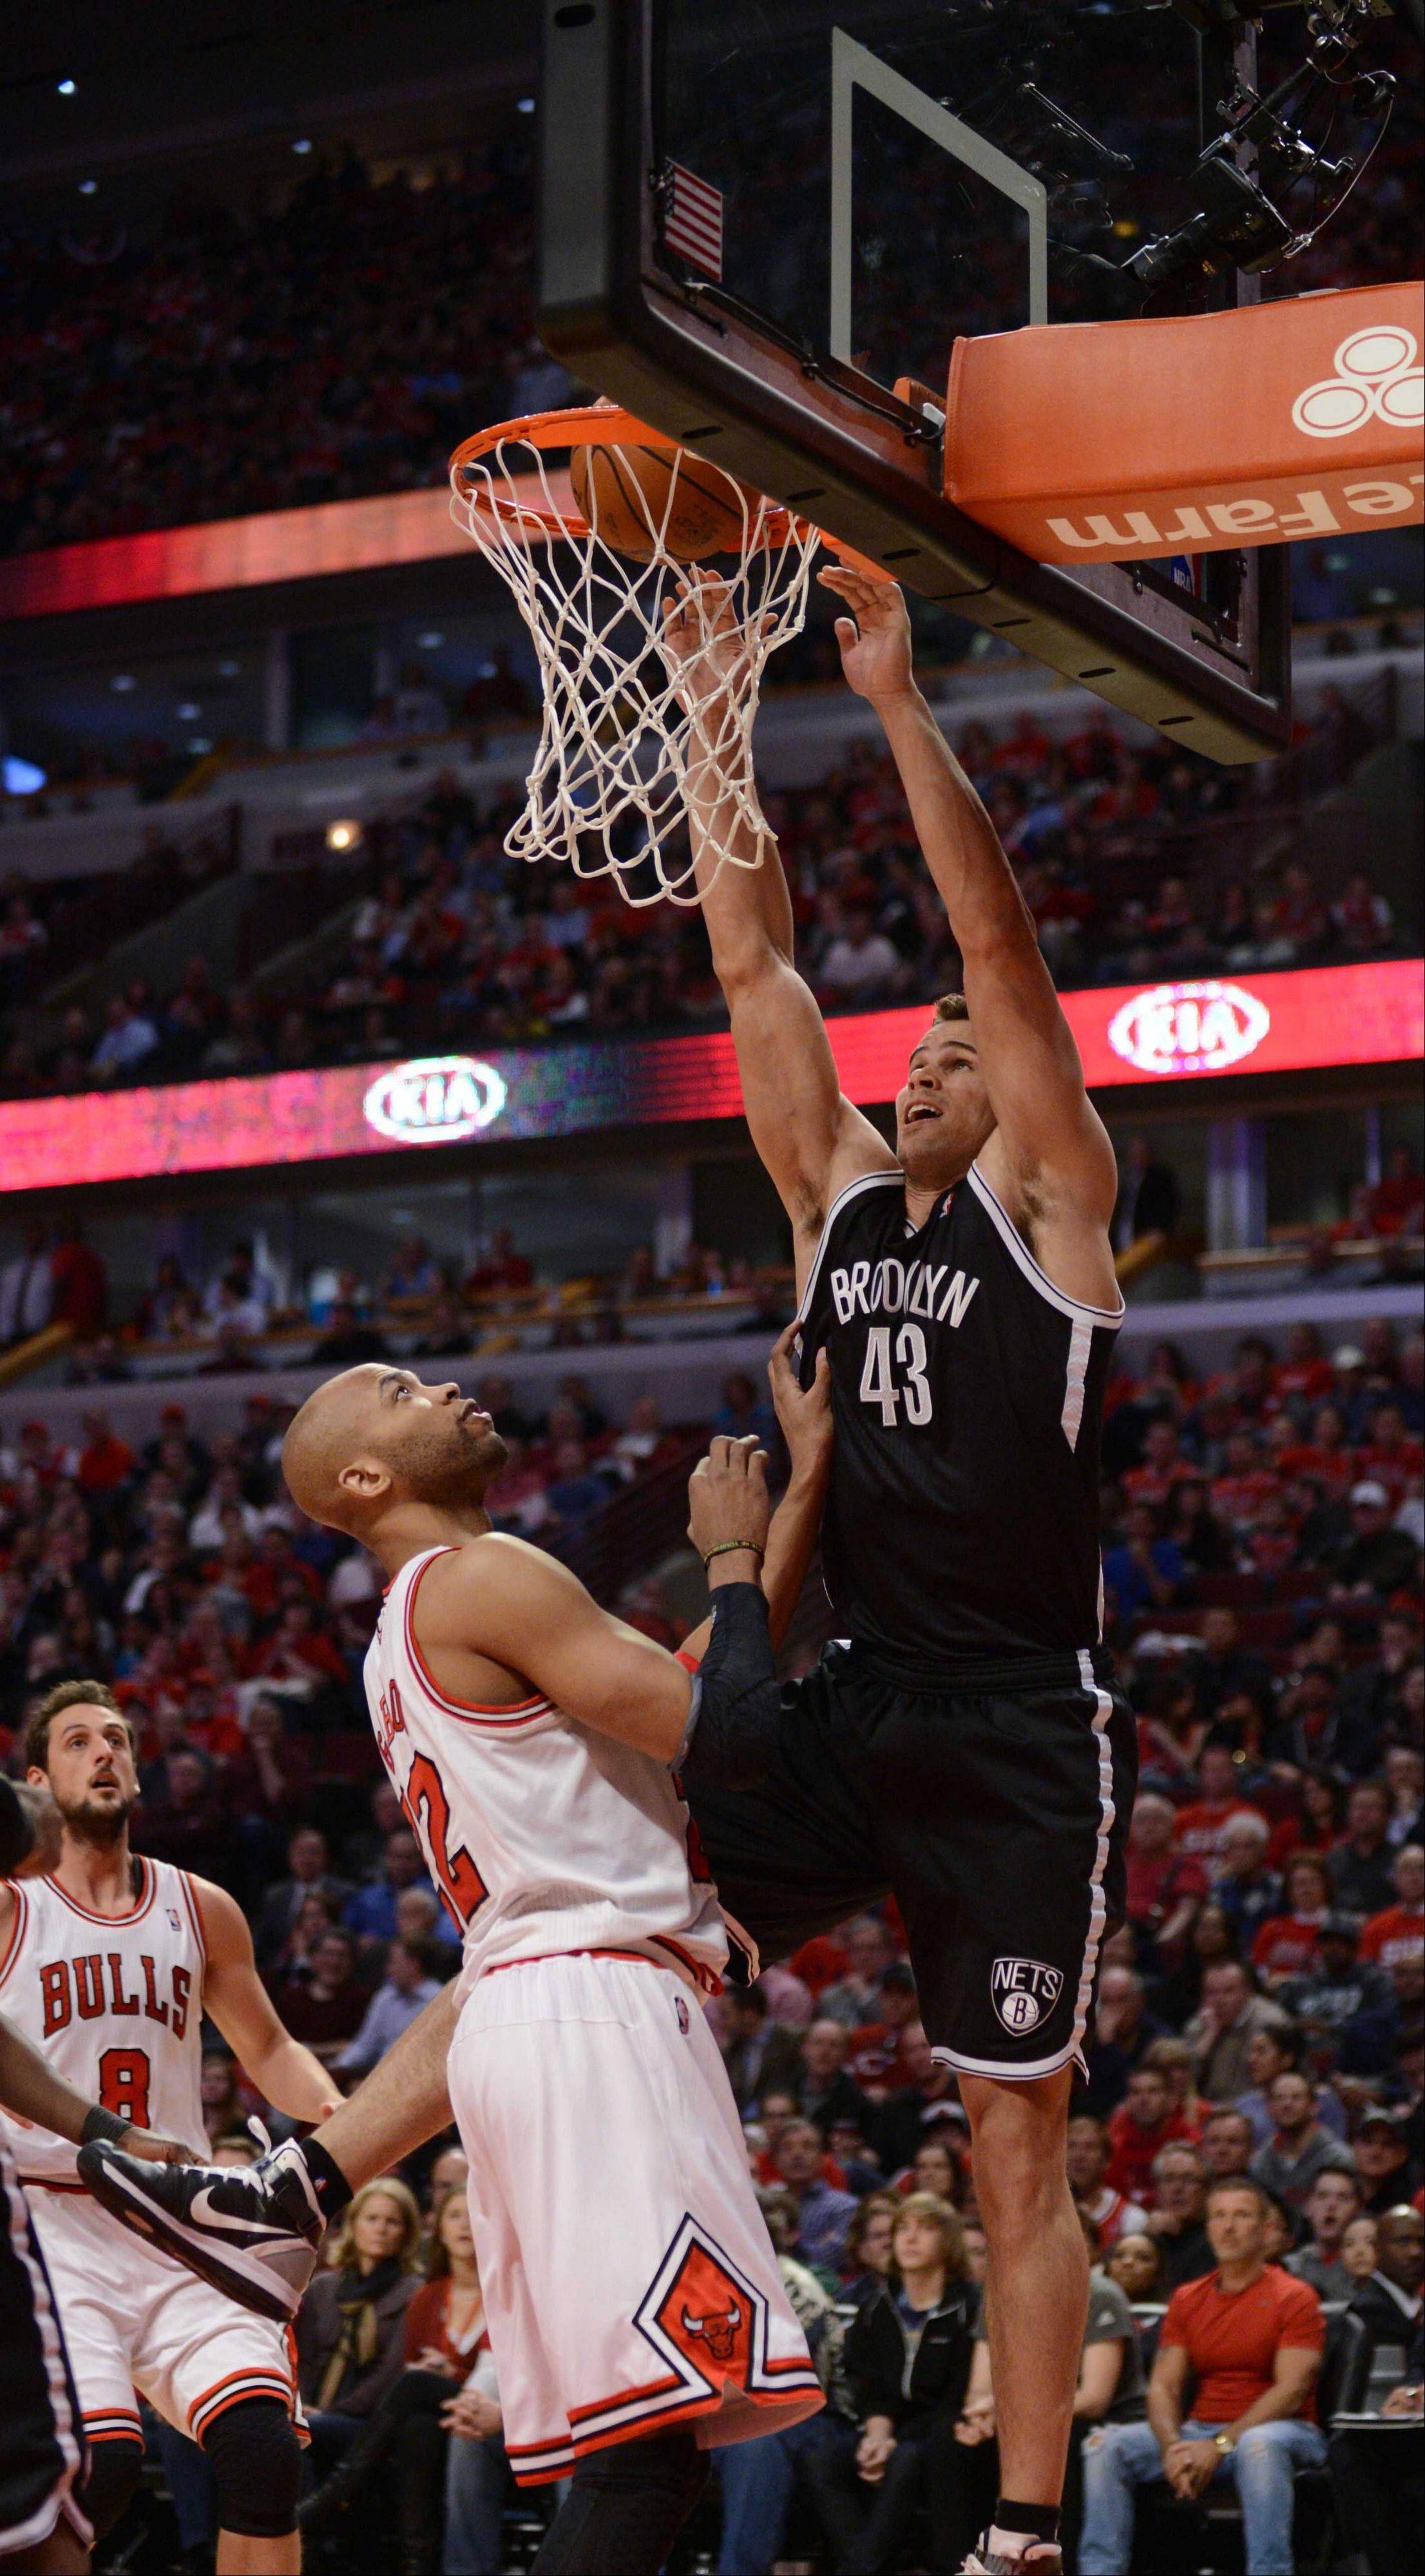 Kris Humphries of Brooklyn slams one as Taj Gibson of Chicago watches.